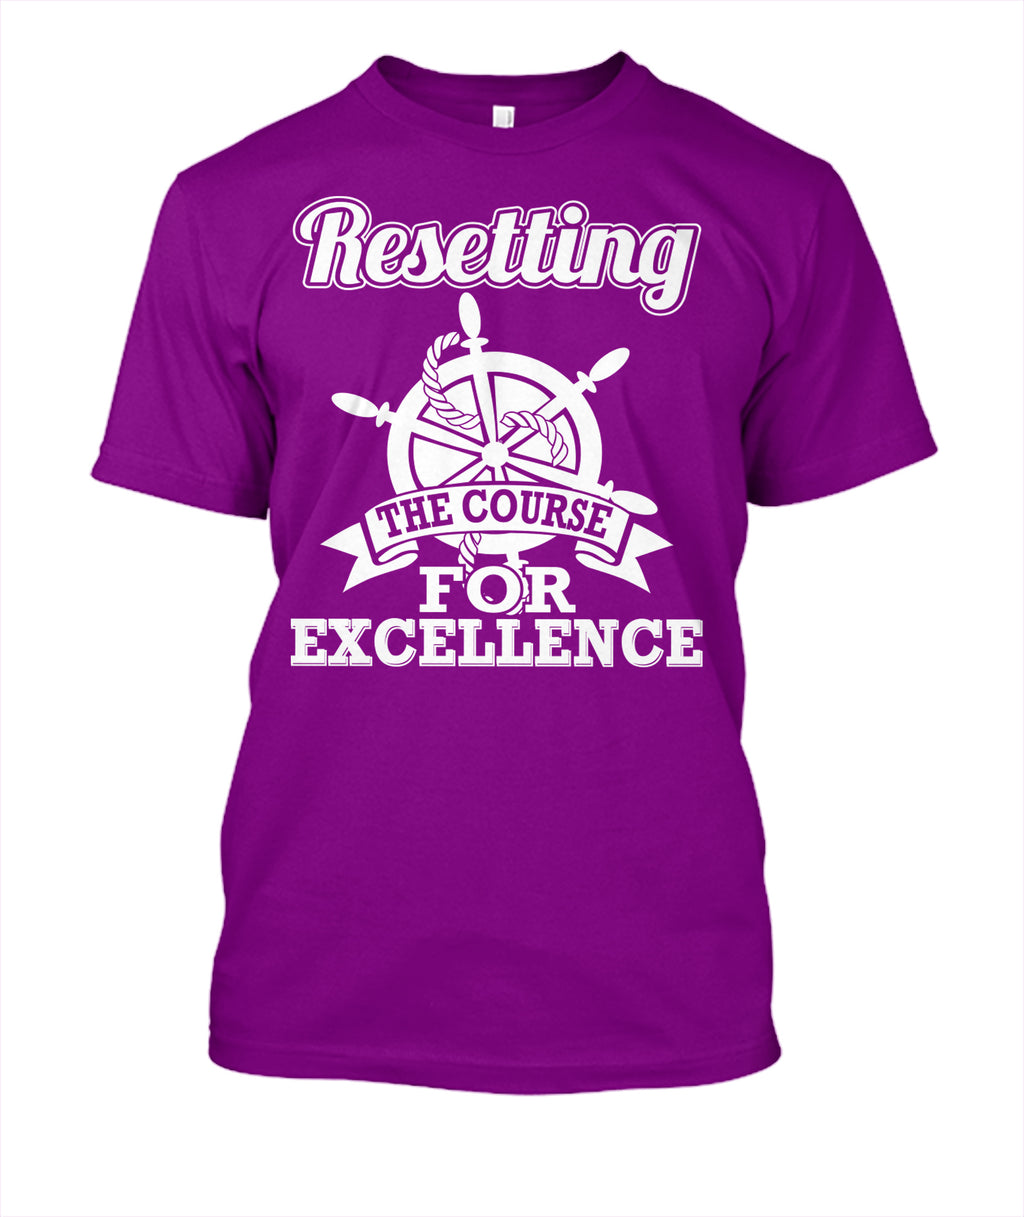 Resetting The Course For Excellence T-Shirt